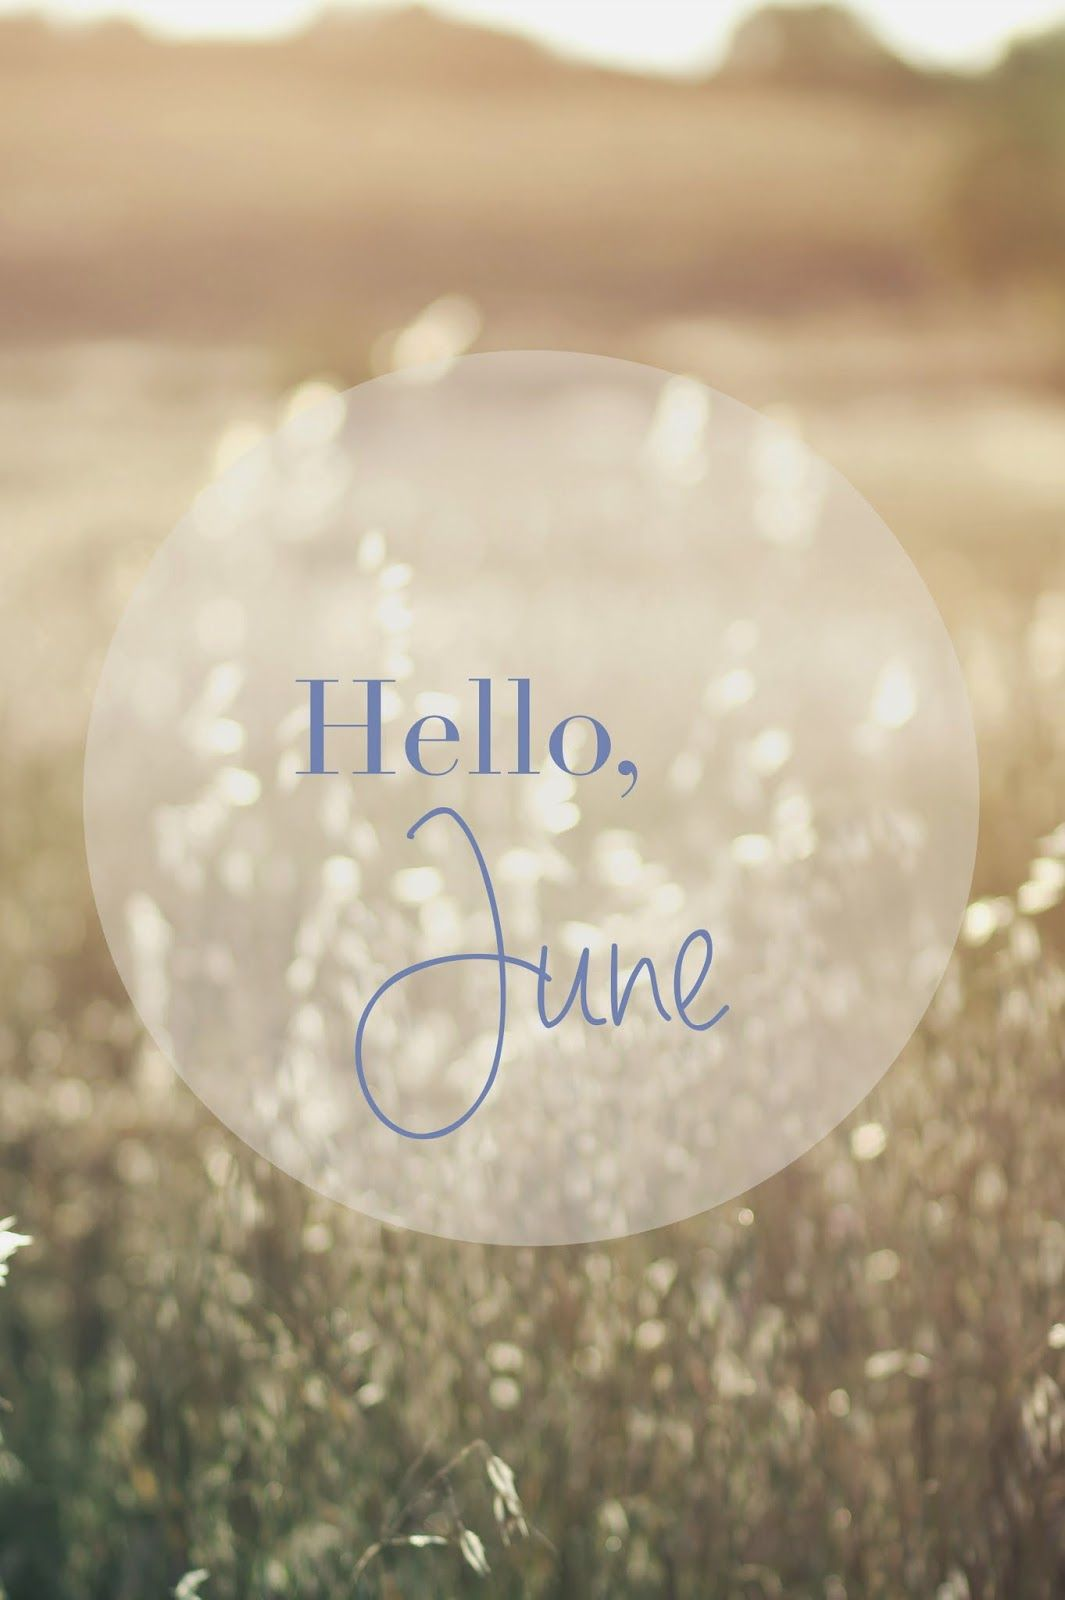 Hello June Background Wallpaper Lock Screen For Android Cellphone IPhone Or Instagram Stories